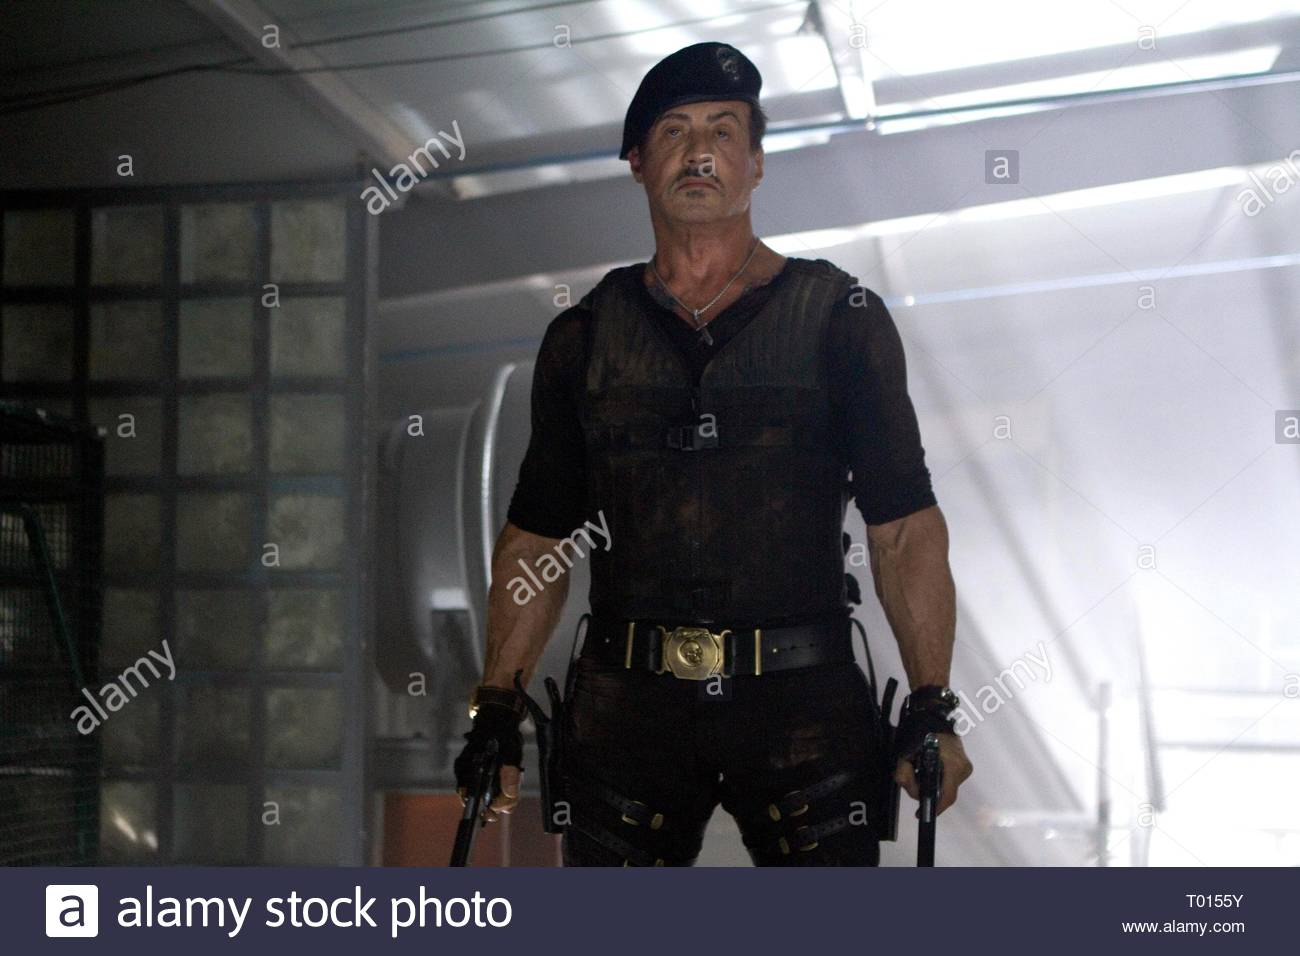 SYLVESTER STALLONE, THE EXPENDABLES 2, 2012 Stock Photo